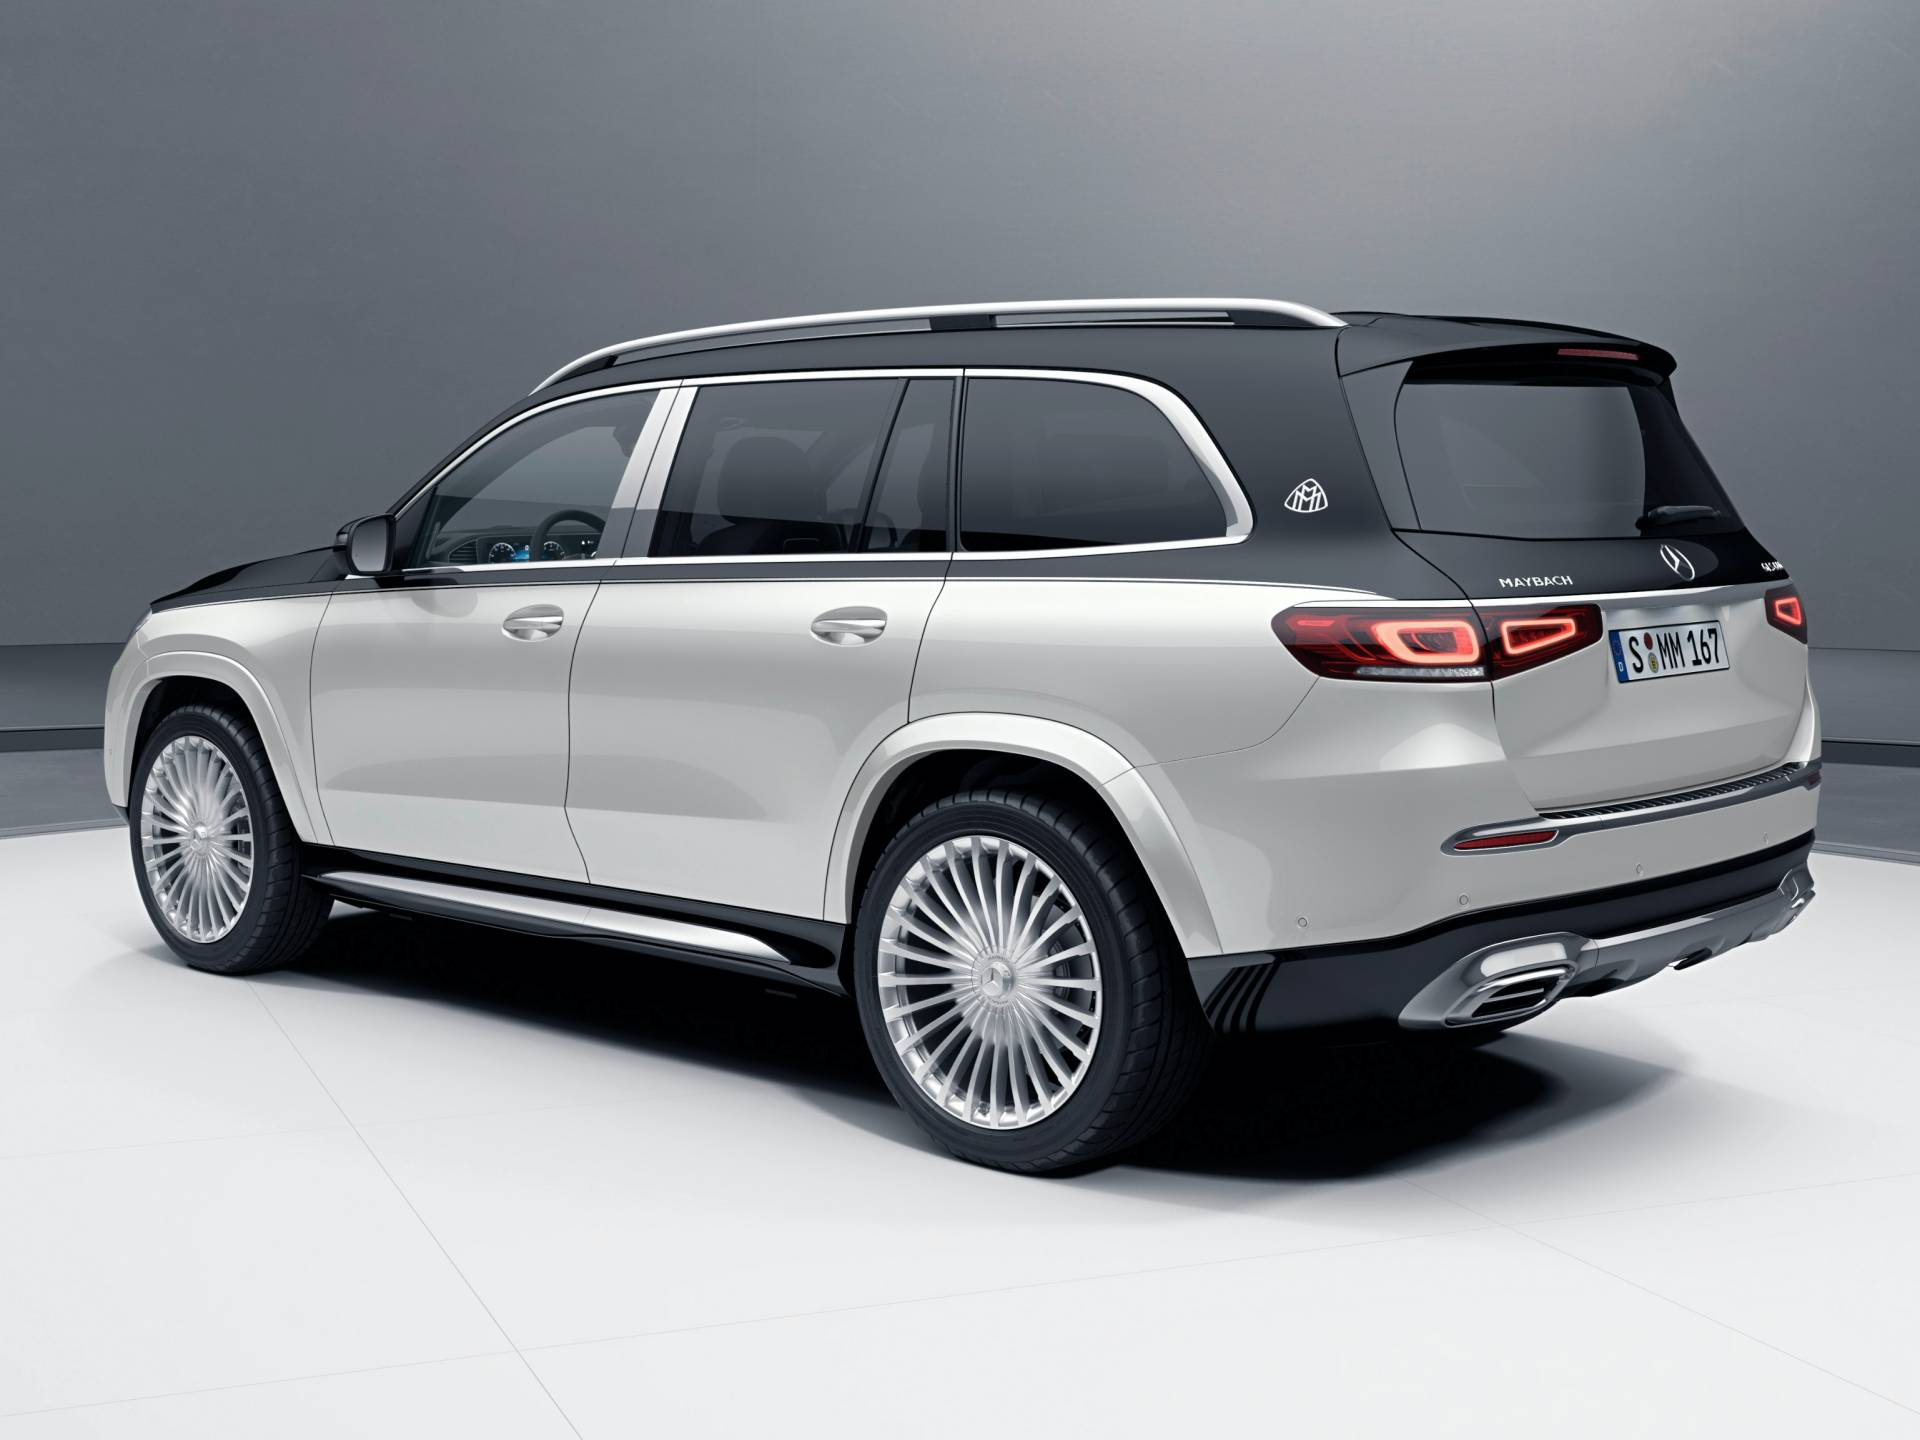 2020-Mercedes-Maybach-GLS-600-4MATIC-65